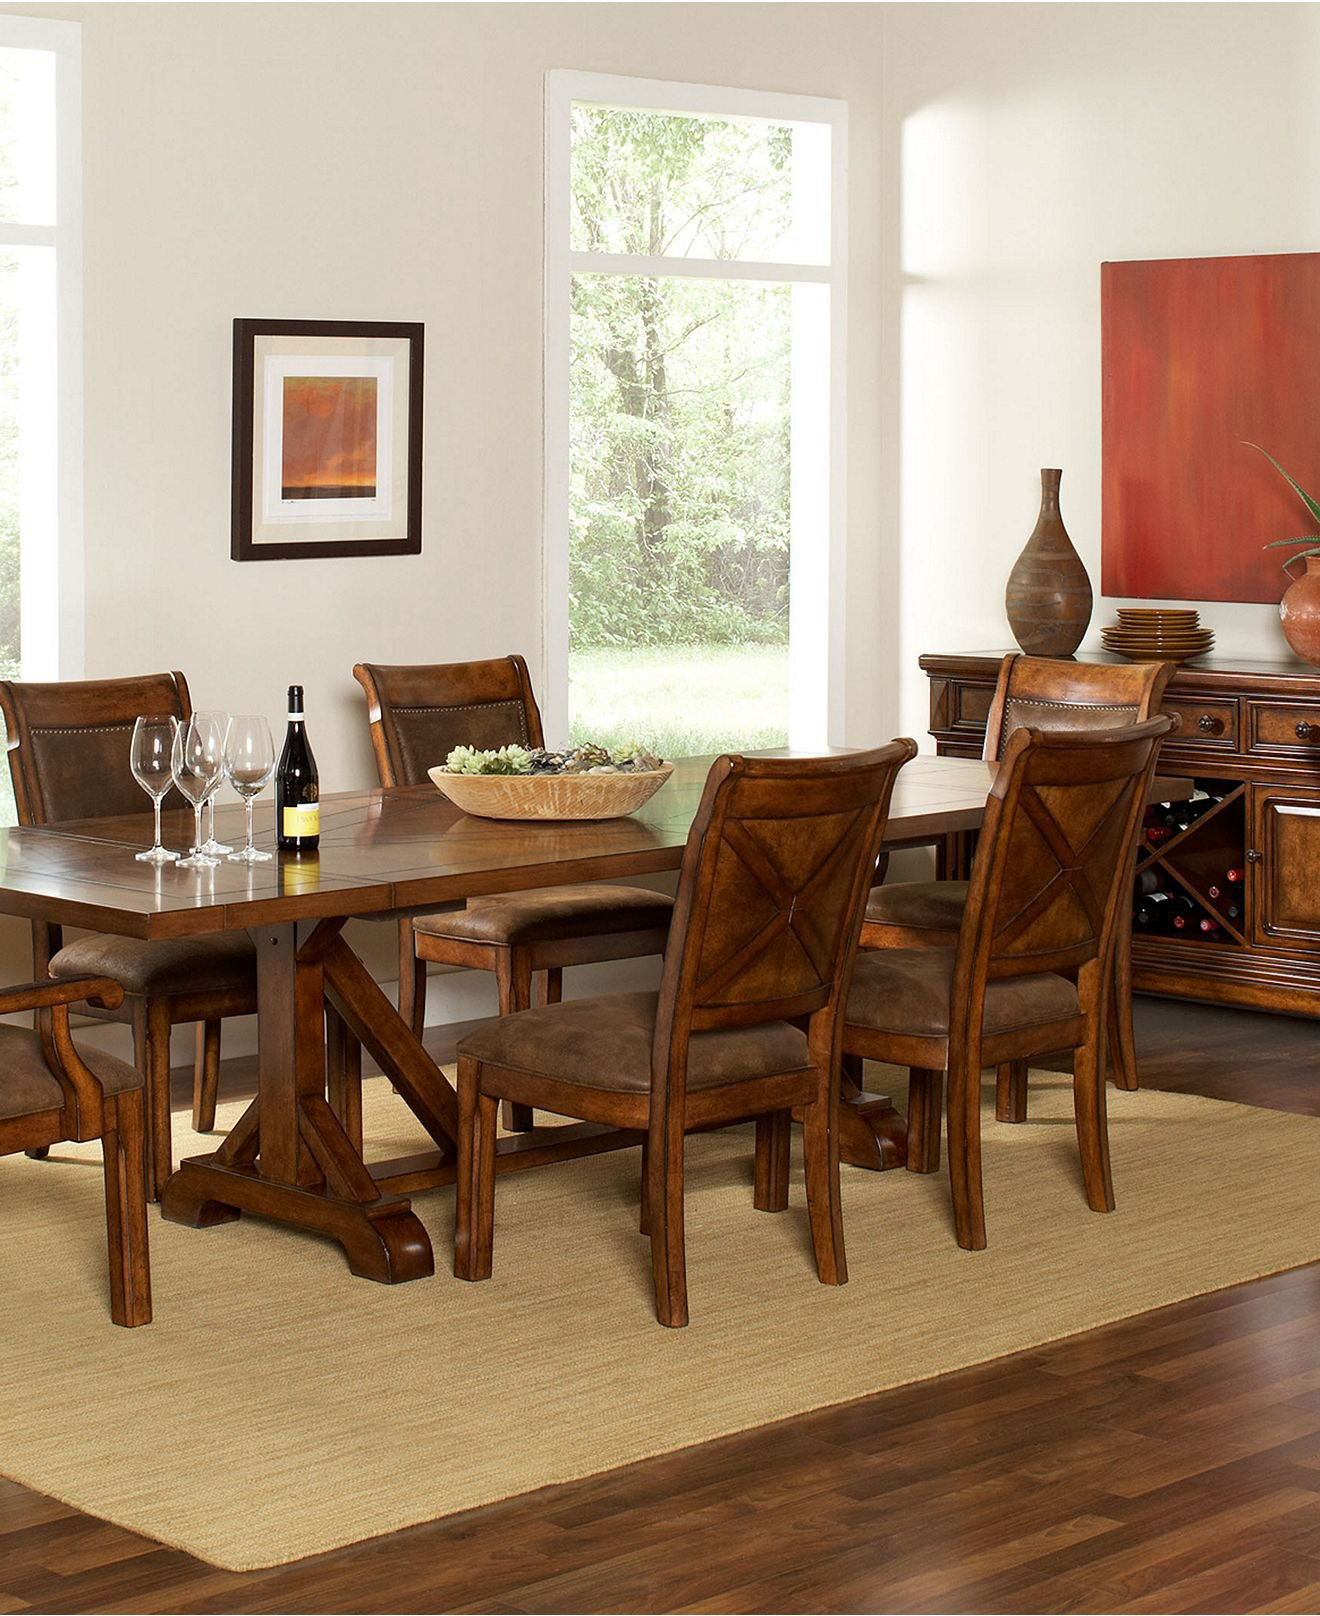 Mandara Dining Room Furniture Collection from Macy s